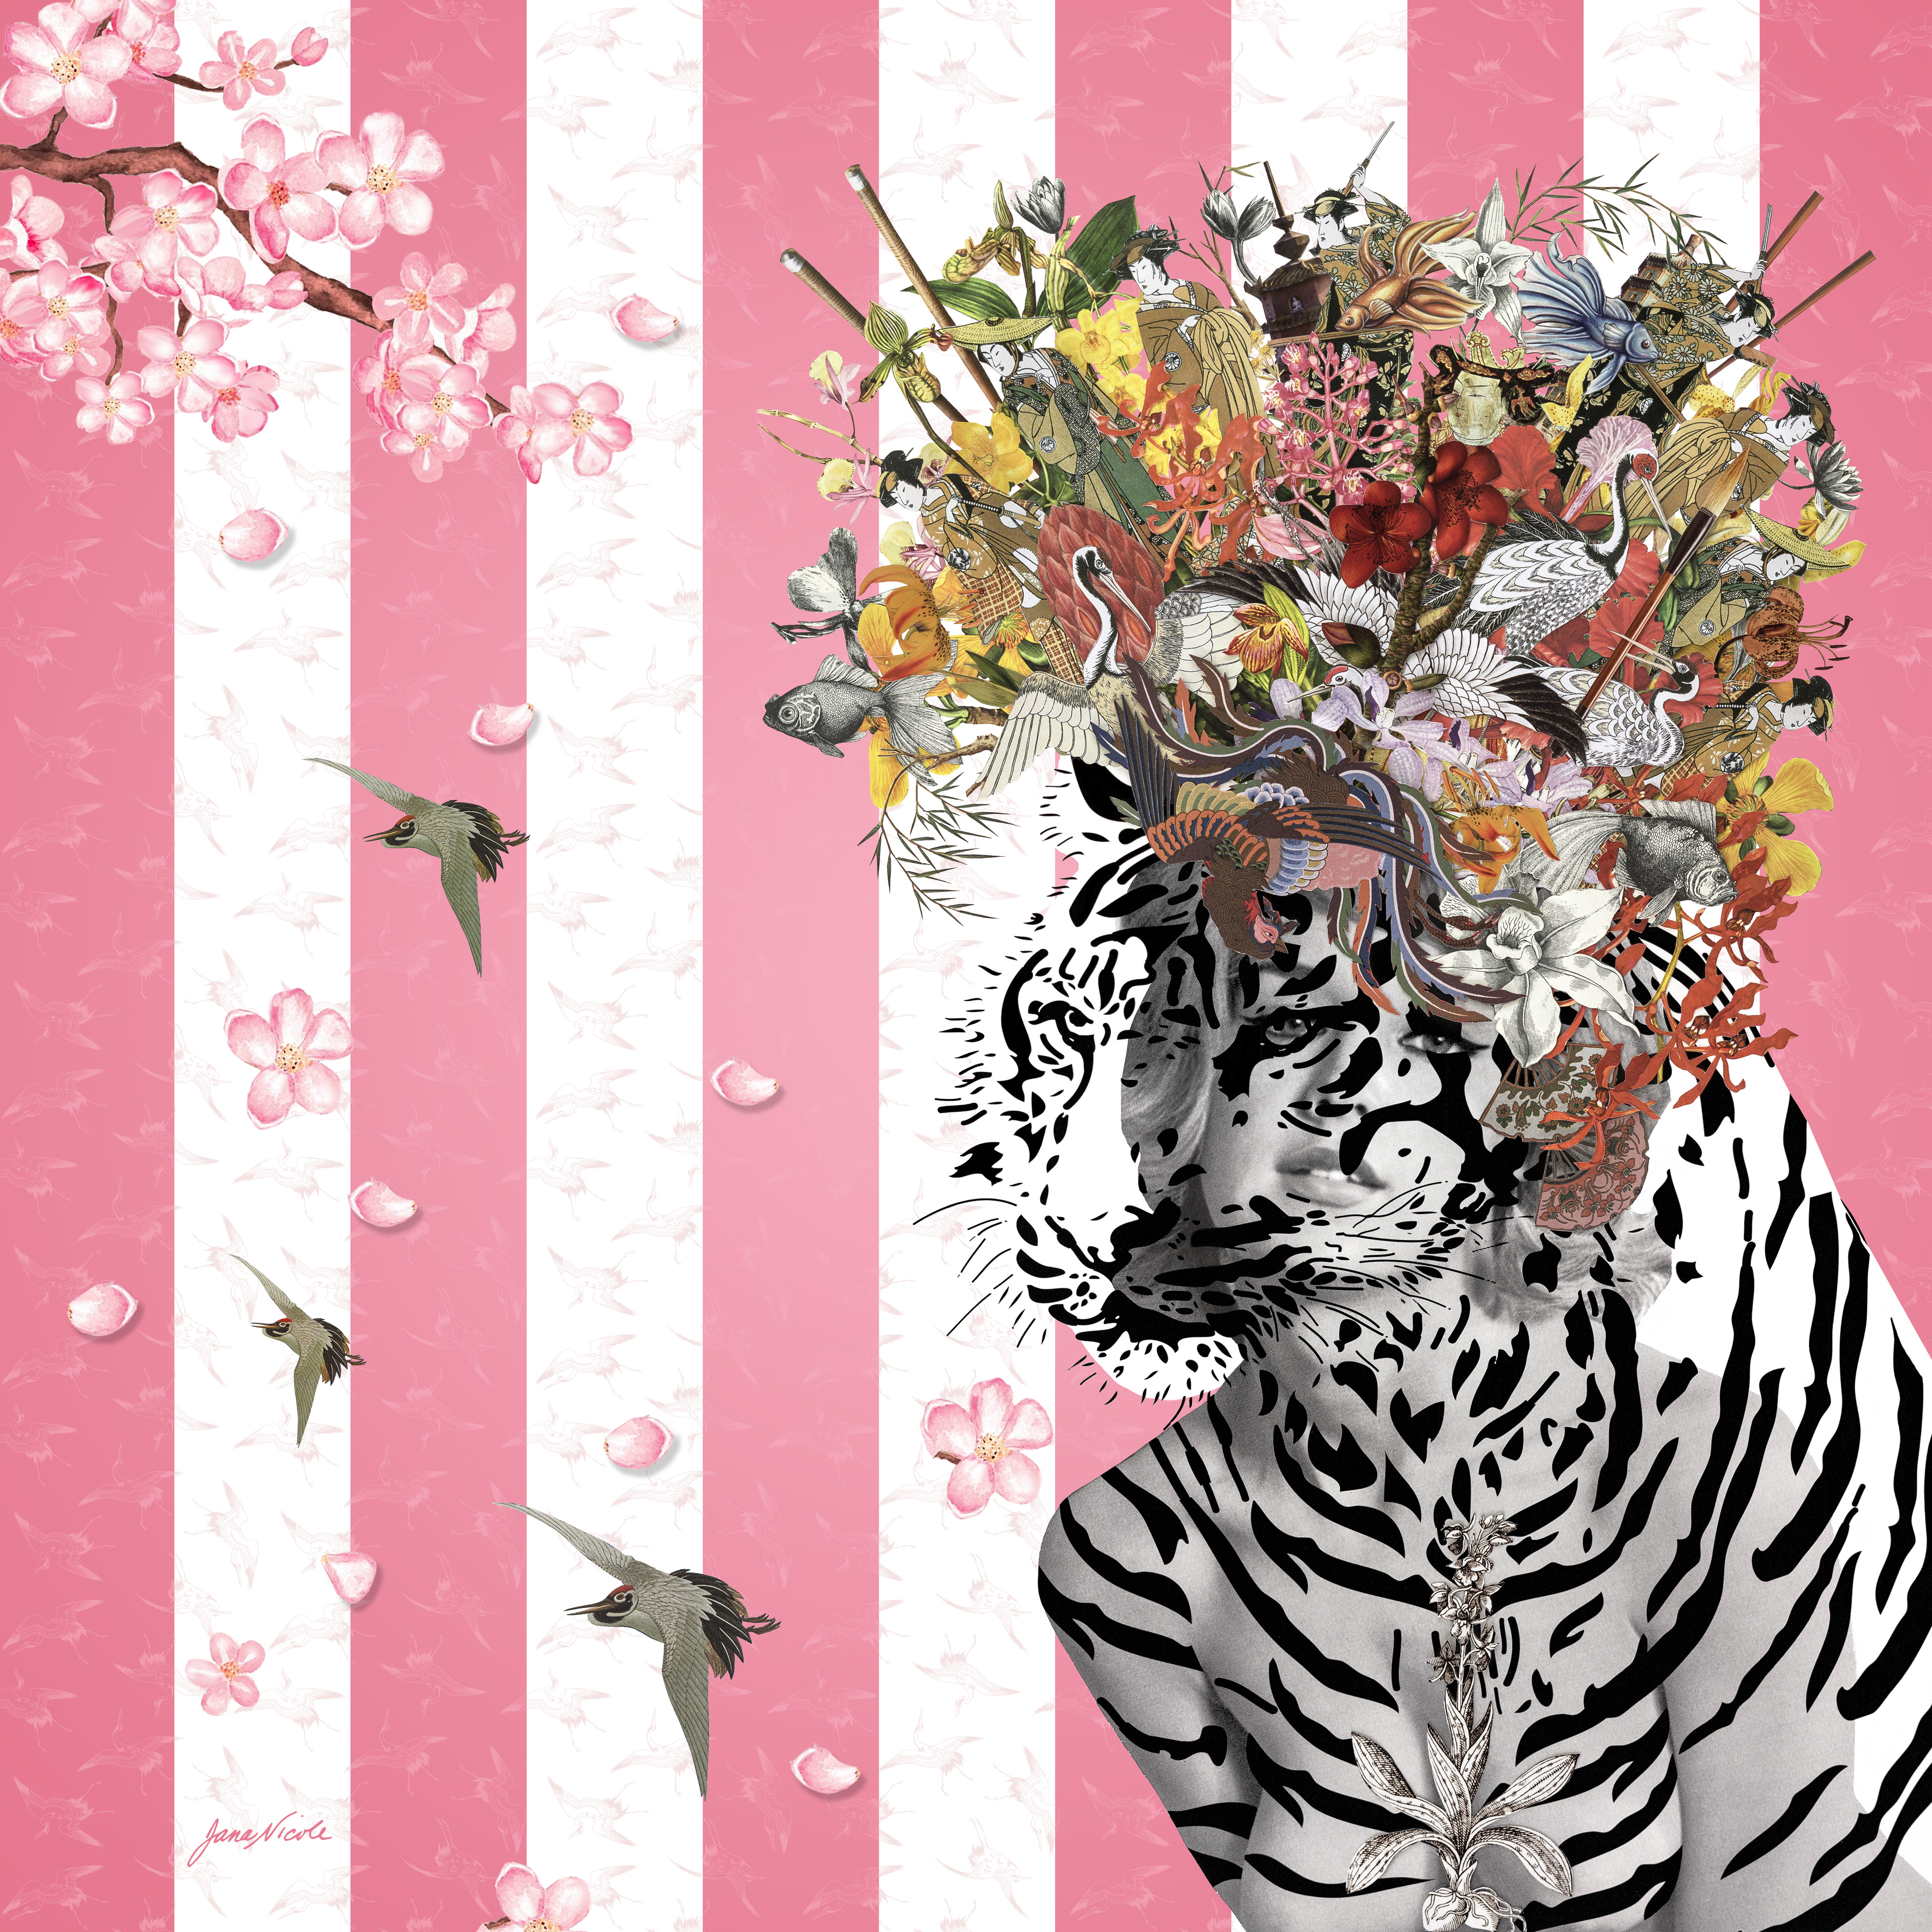 Collage artwork by Jana Nicole Conway